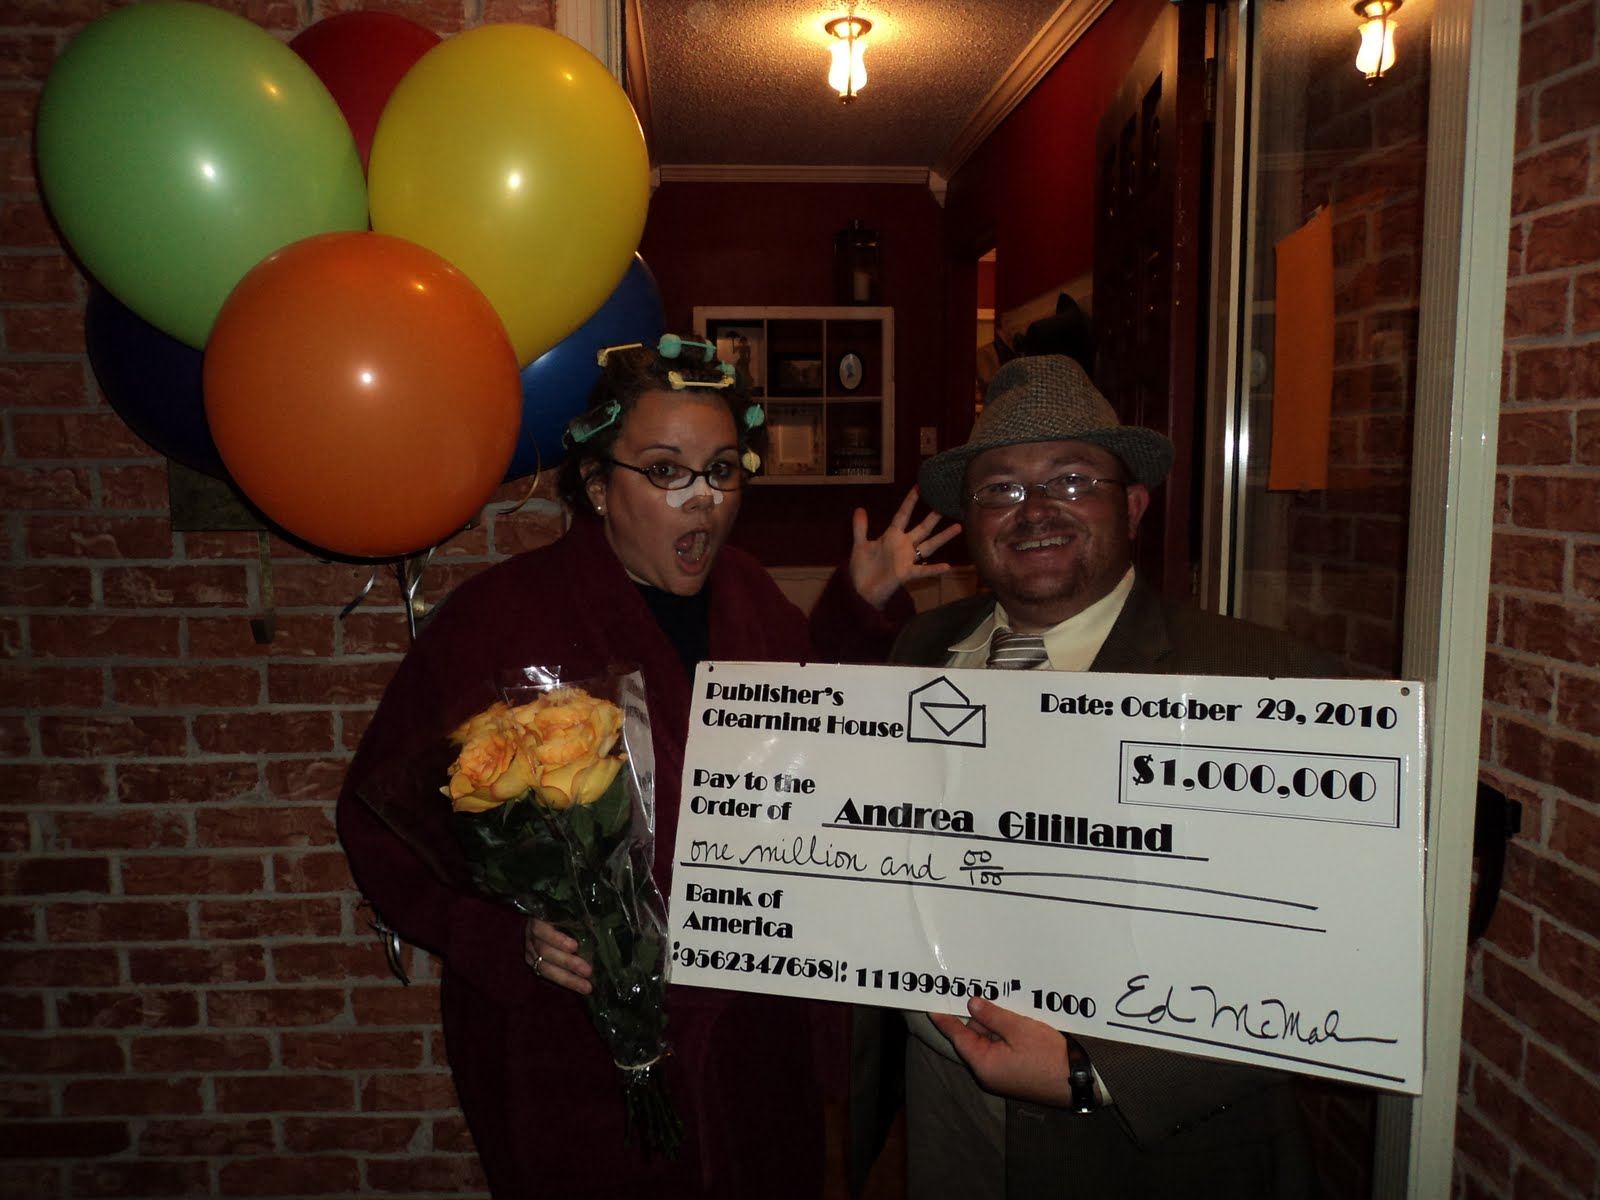 Publisher's Clearing House Costume